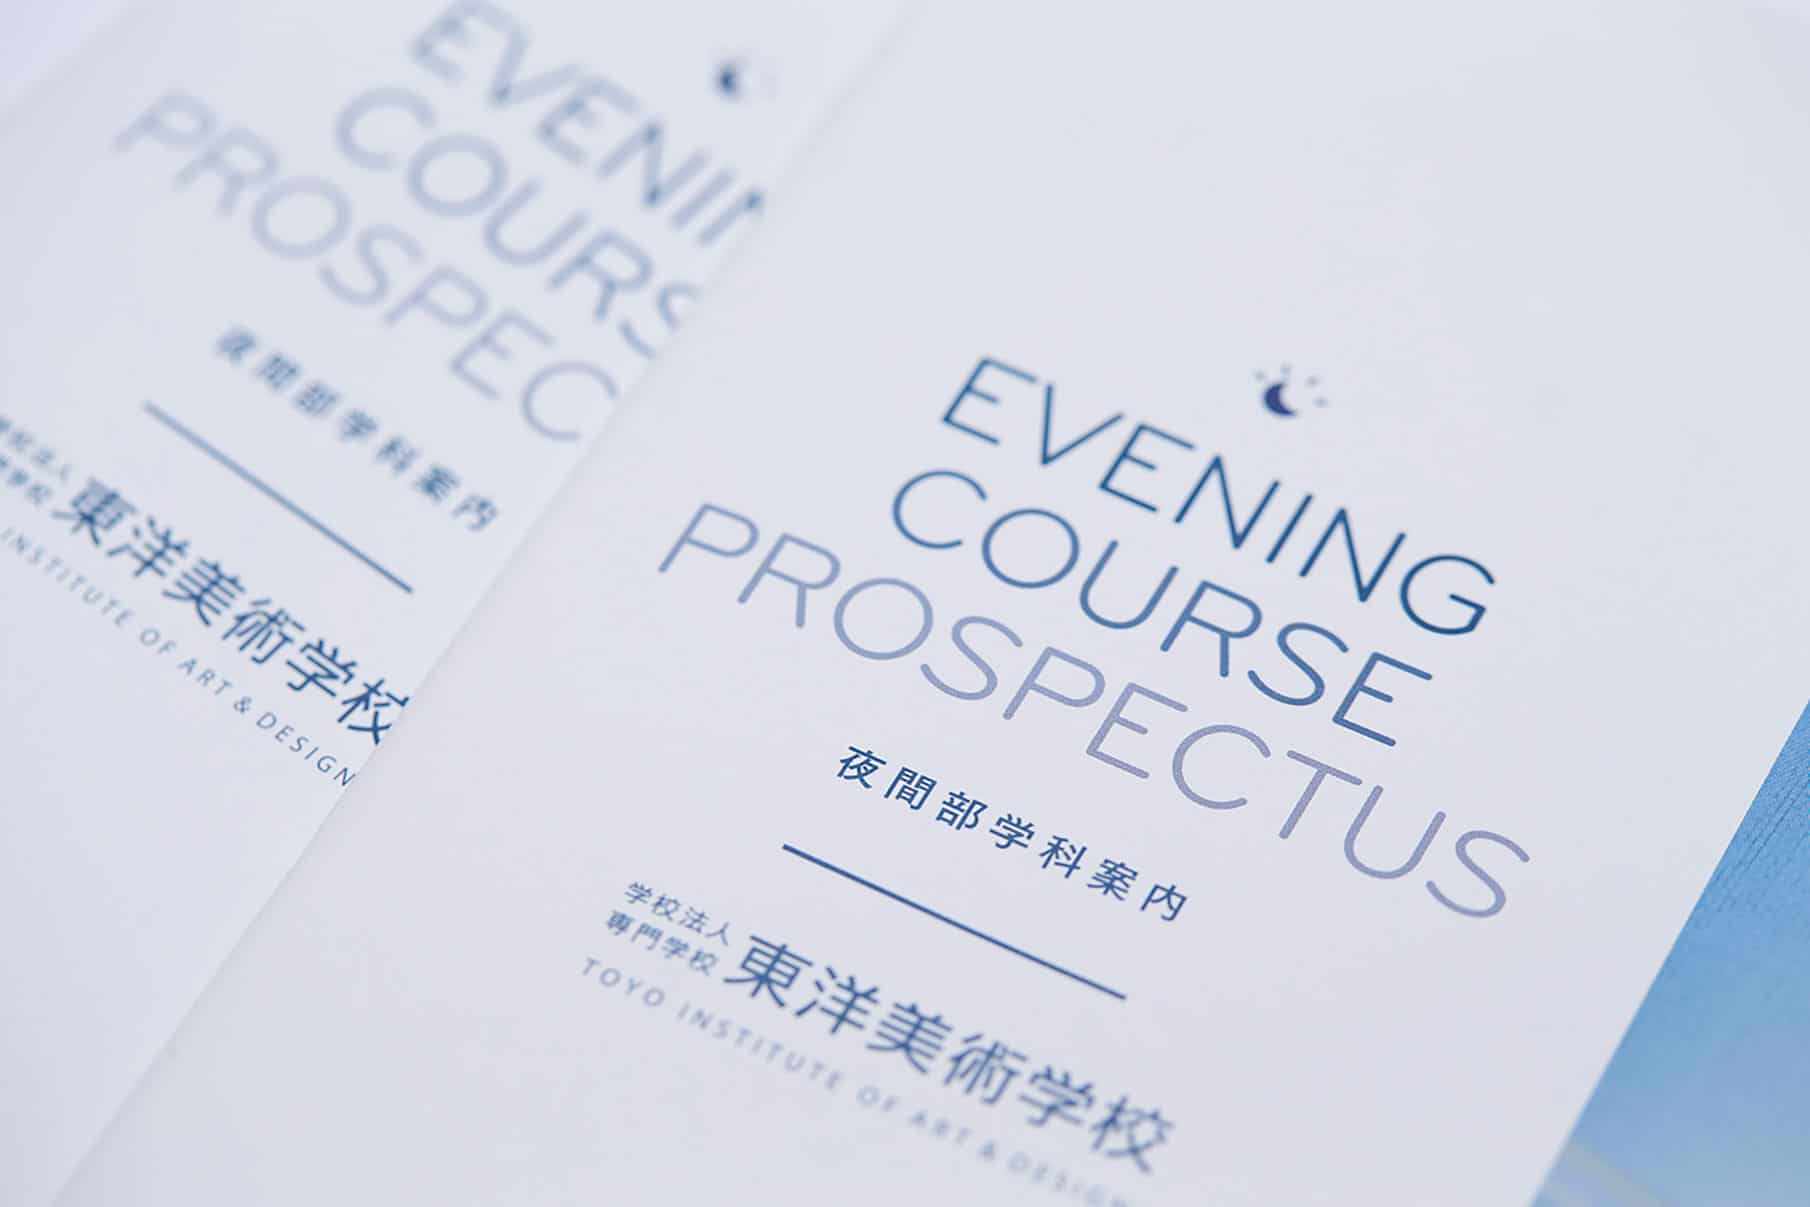 Toyo institute of art and design - Evening Course Prospectus 8